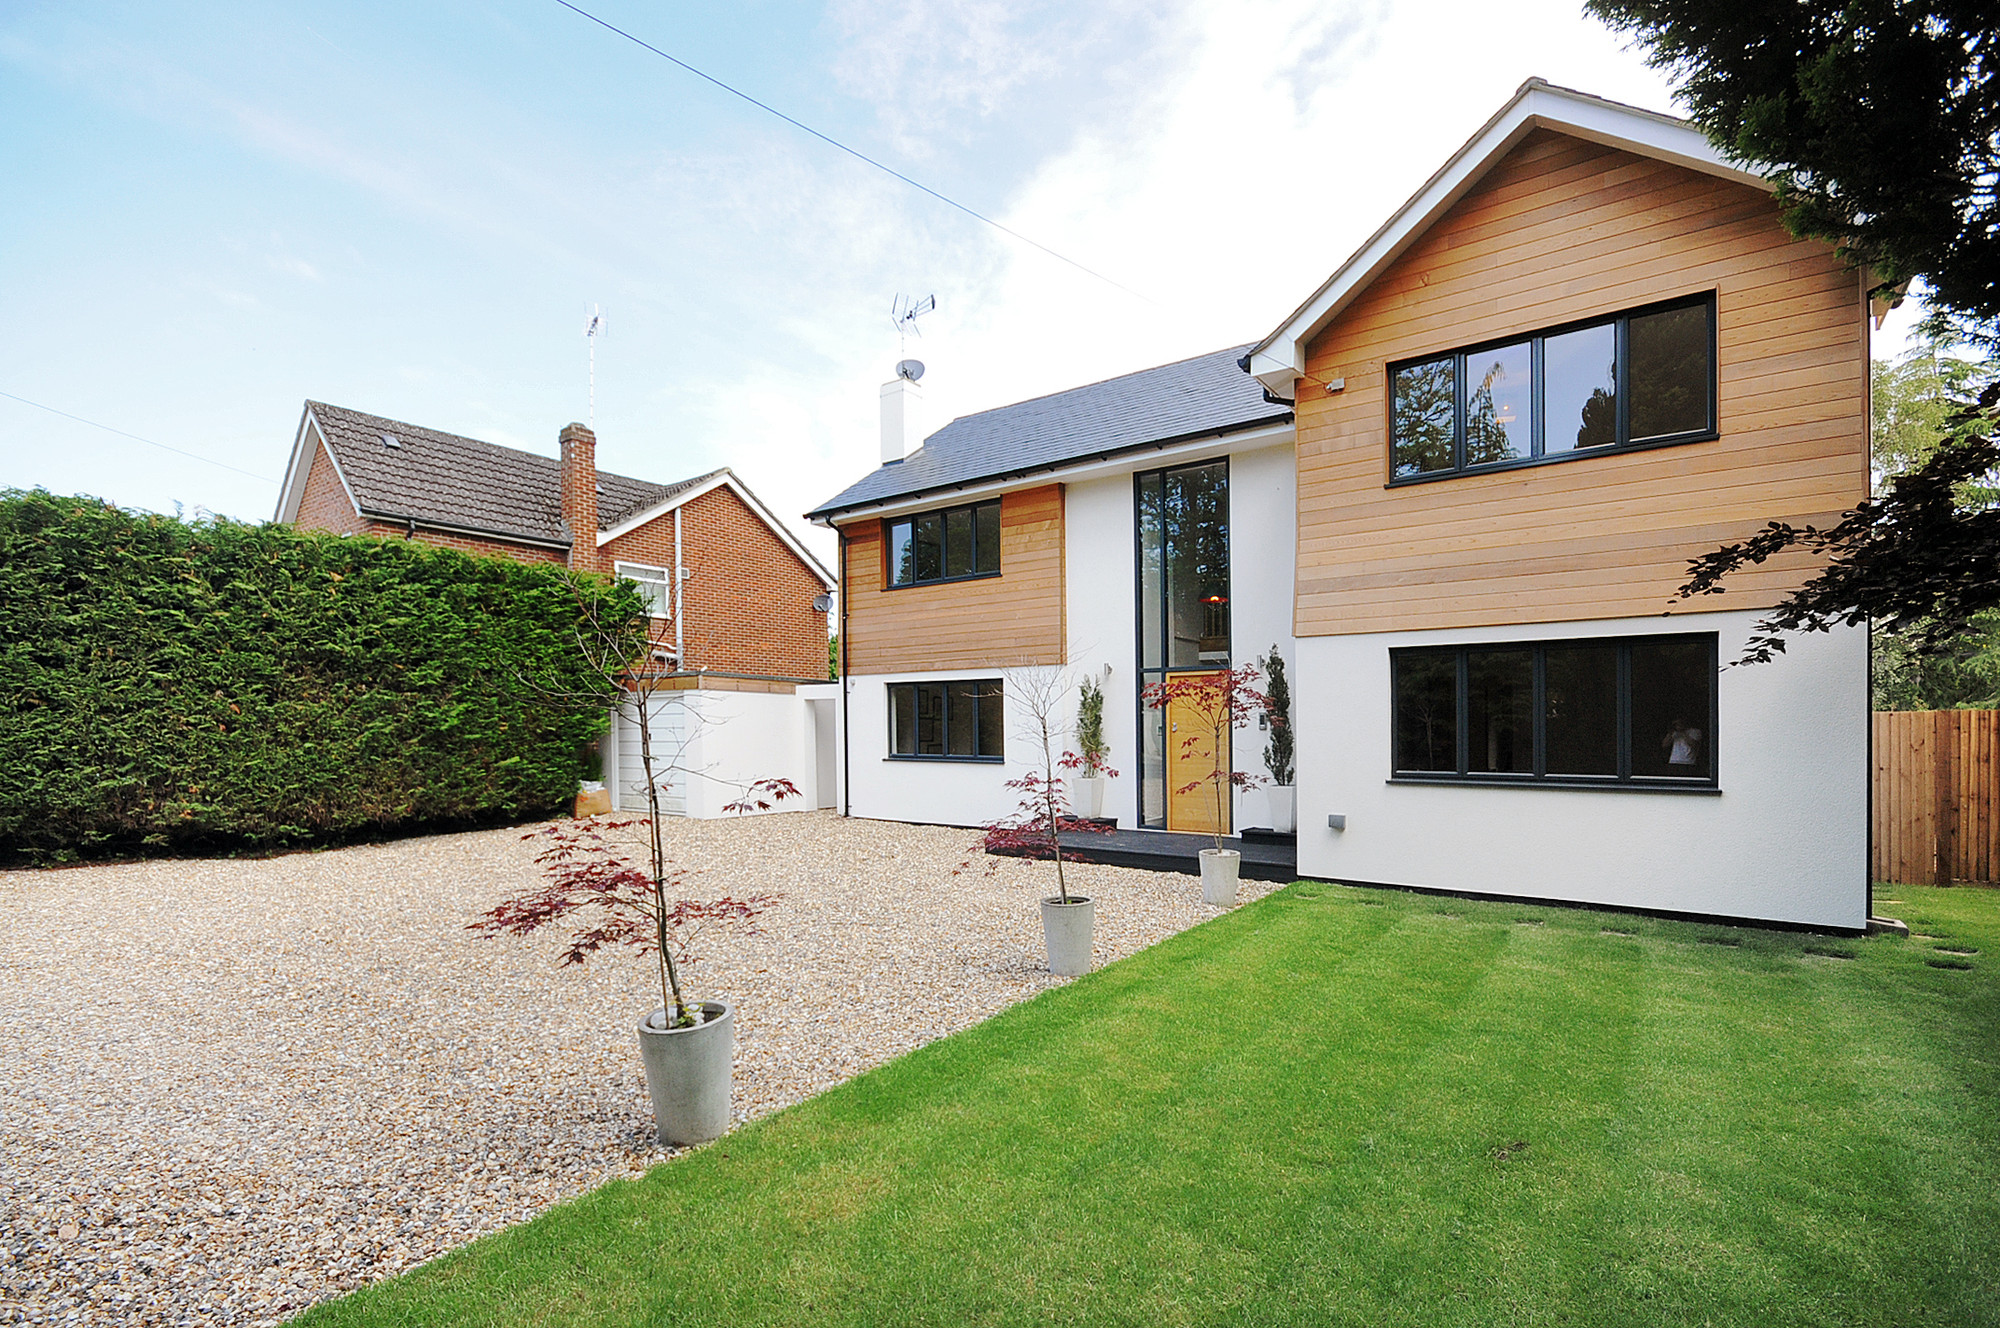 Conversion of bungalow to two storey house hampshire - What is a bungalow house ...